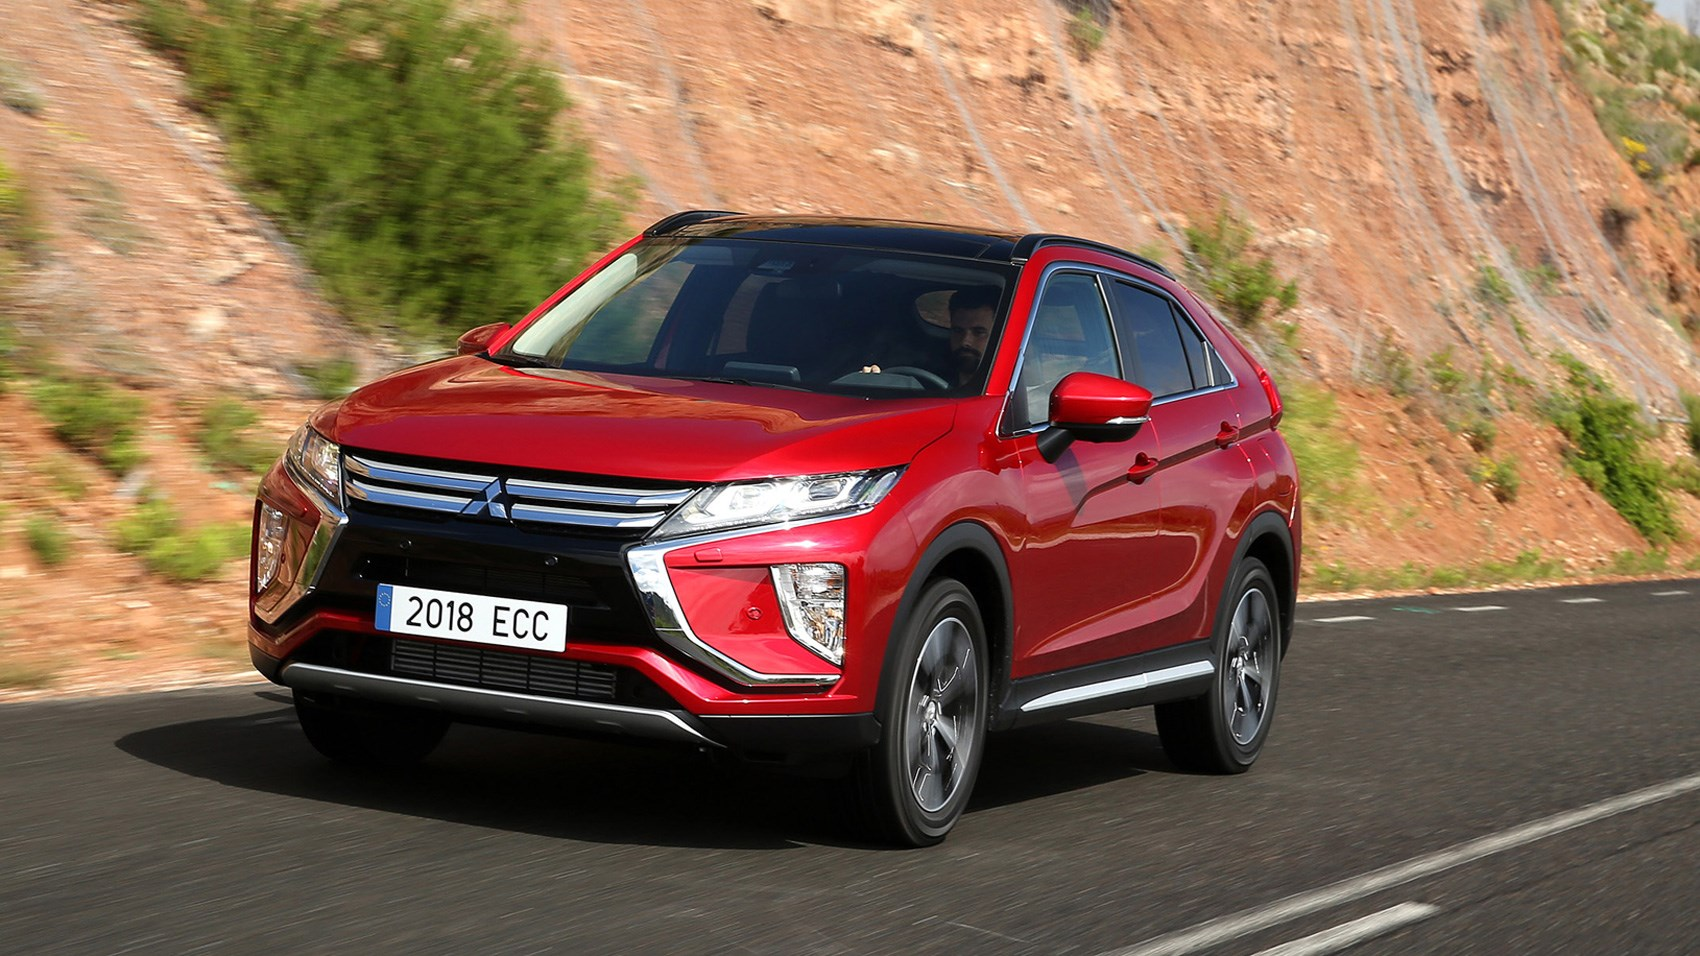 mitsubishi eclipse cross 1 5 4wd cvt 2017 review by car. Black Bedroom Furniture Sets. Home Design Ideas